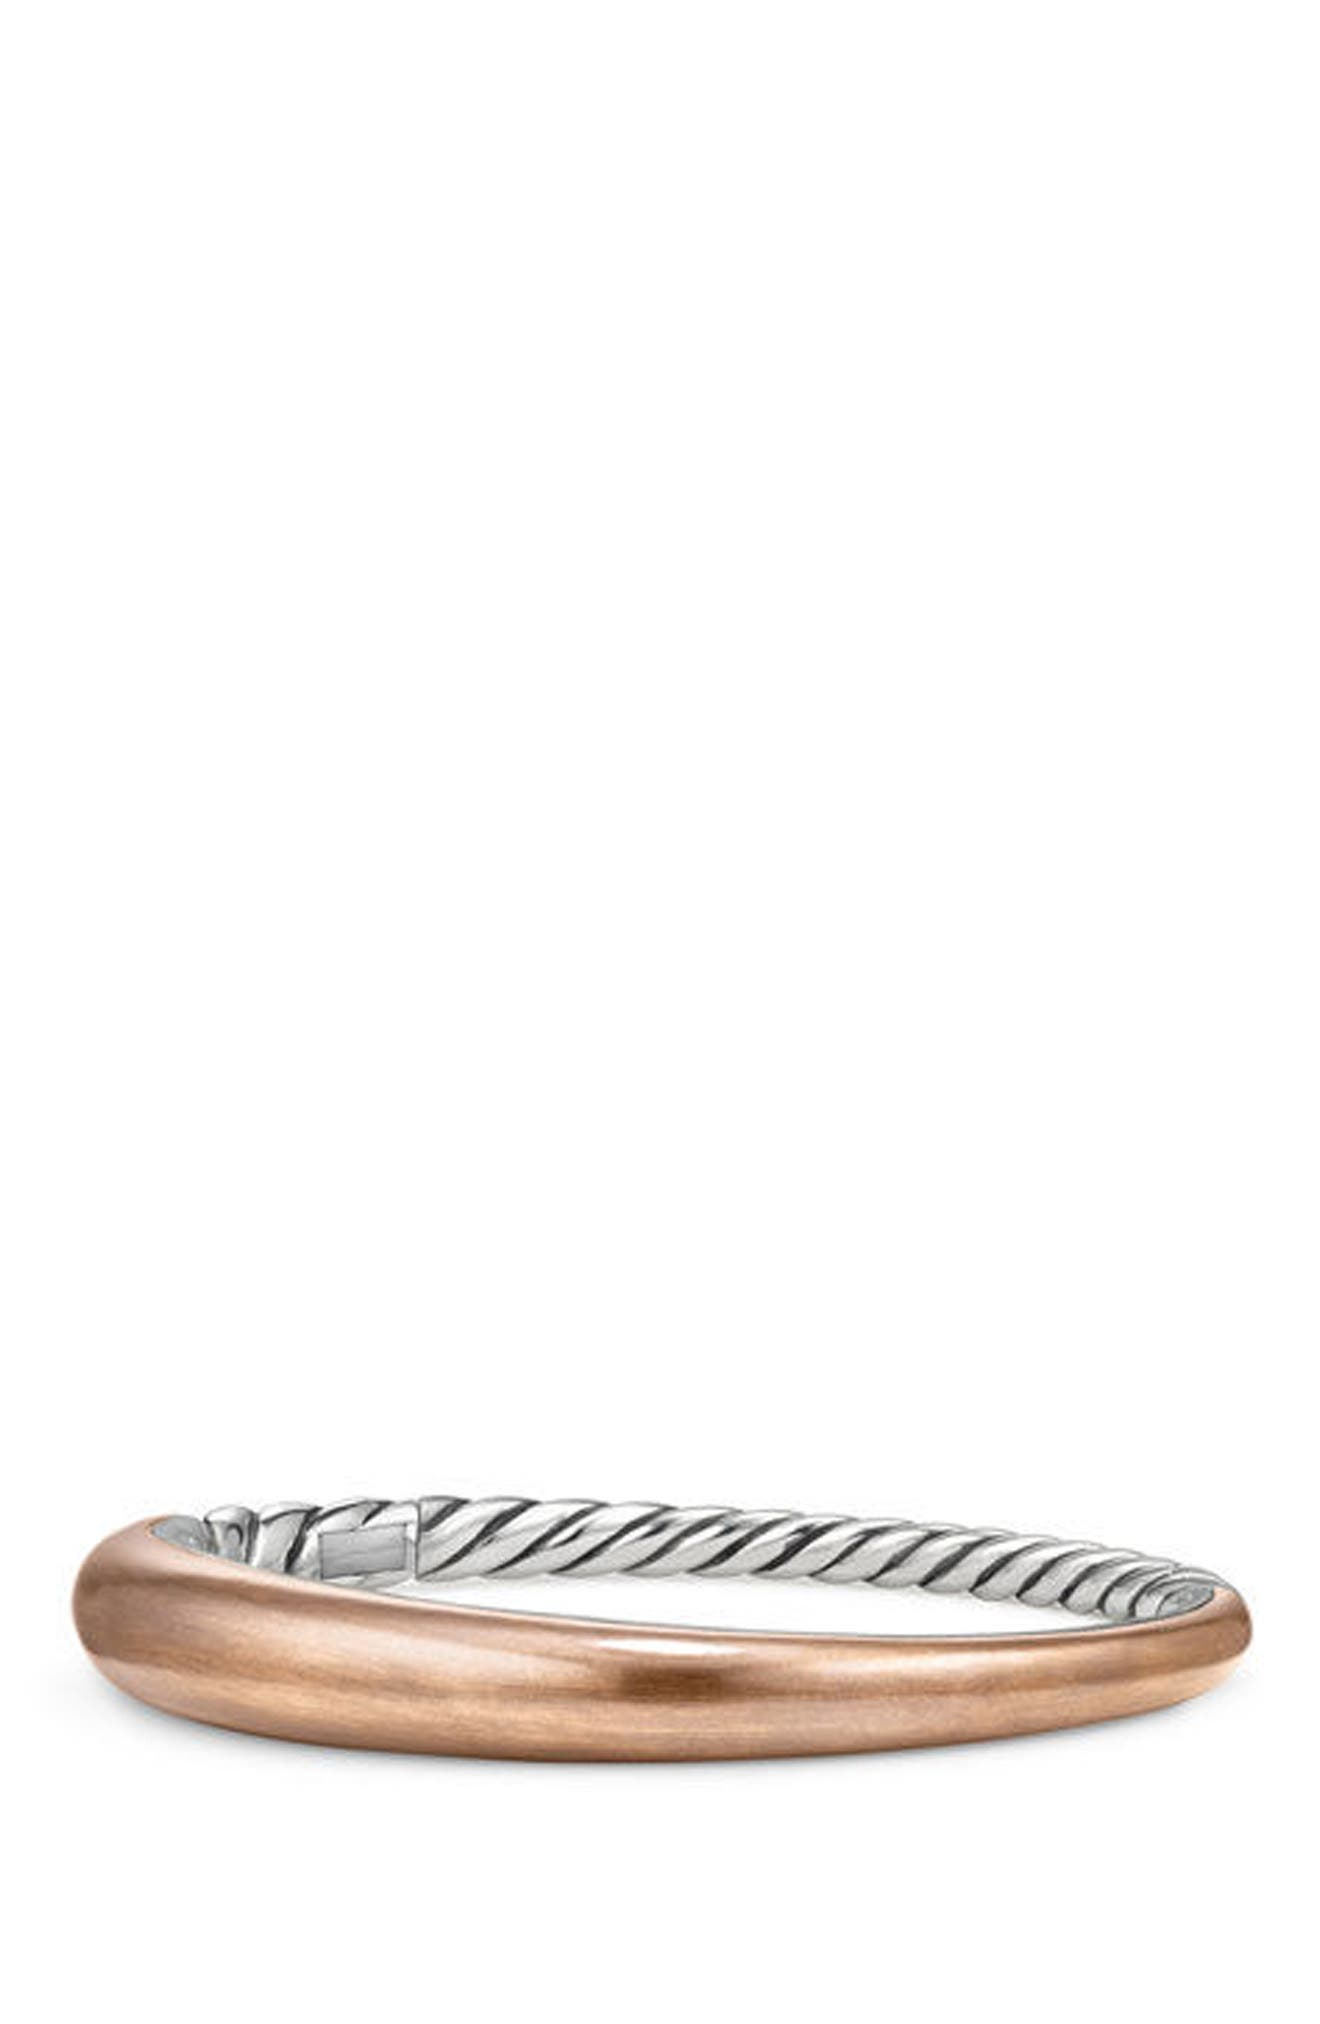 Pure Form Mixed Metal Smooth Bracelet with Diamonds, Bronze and Silver, 9.5mm,                         Main,                         color, Silver